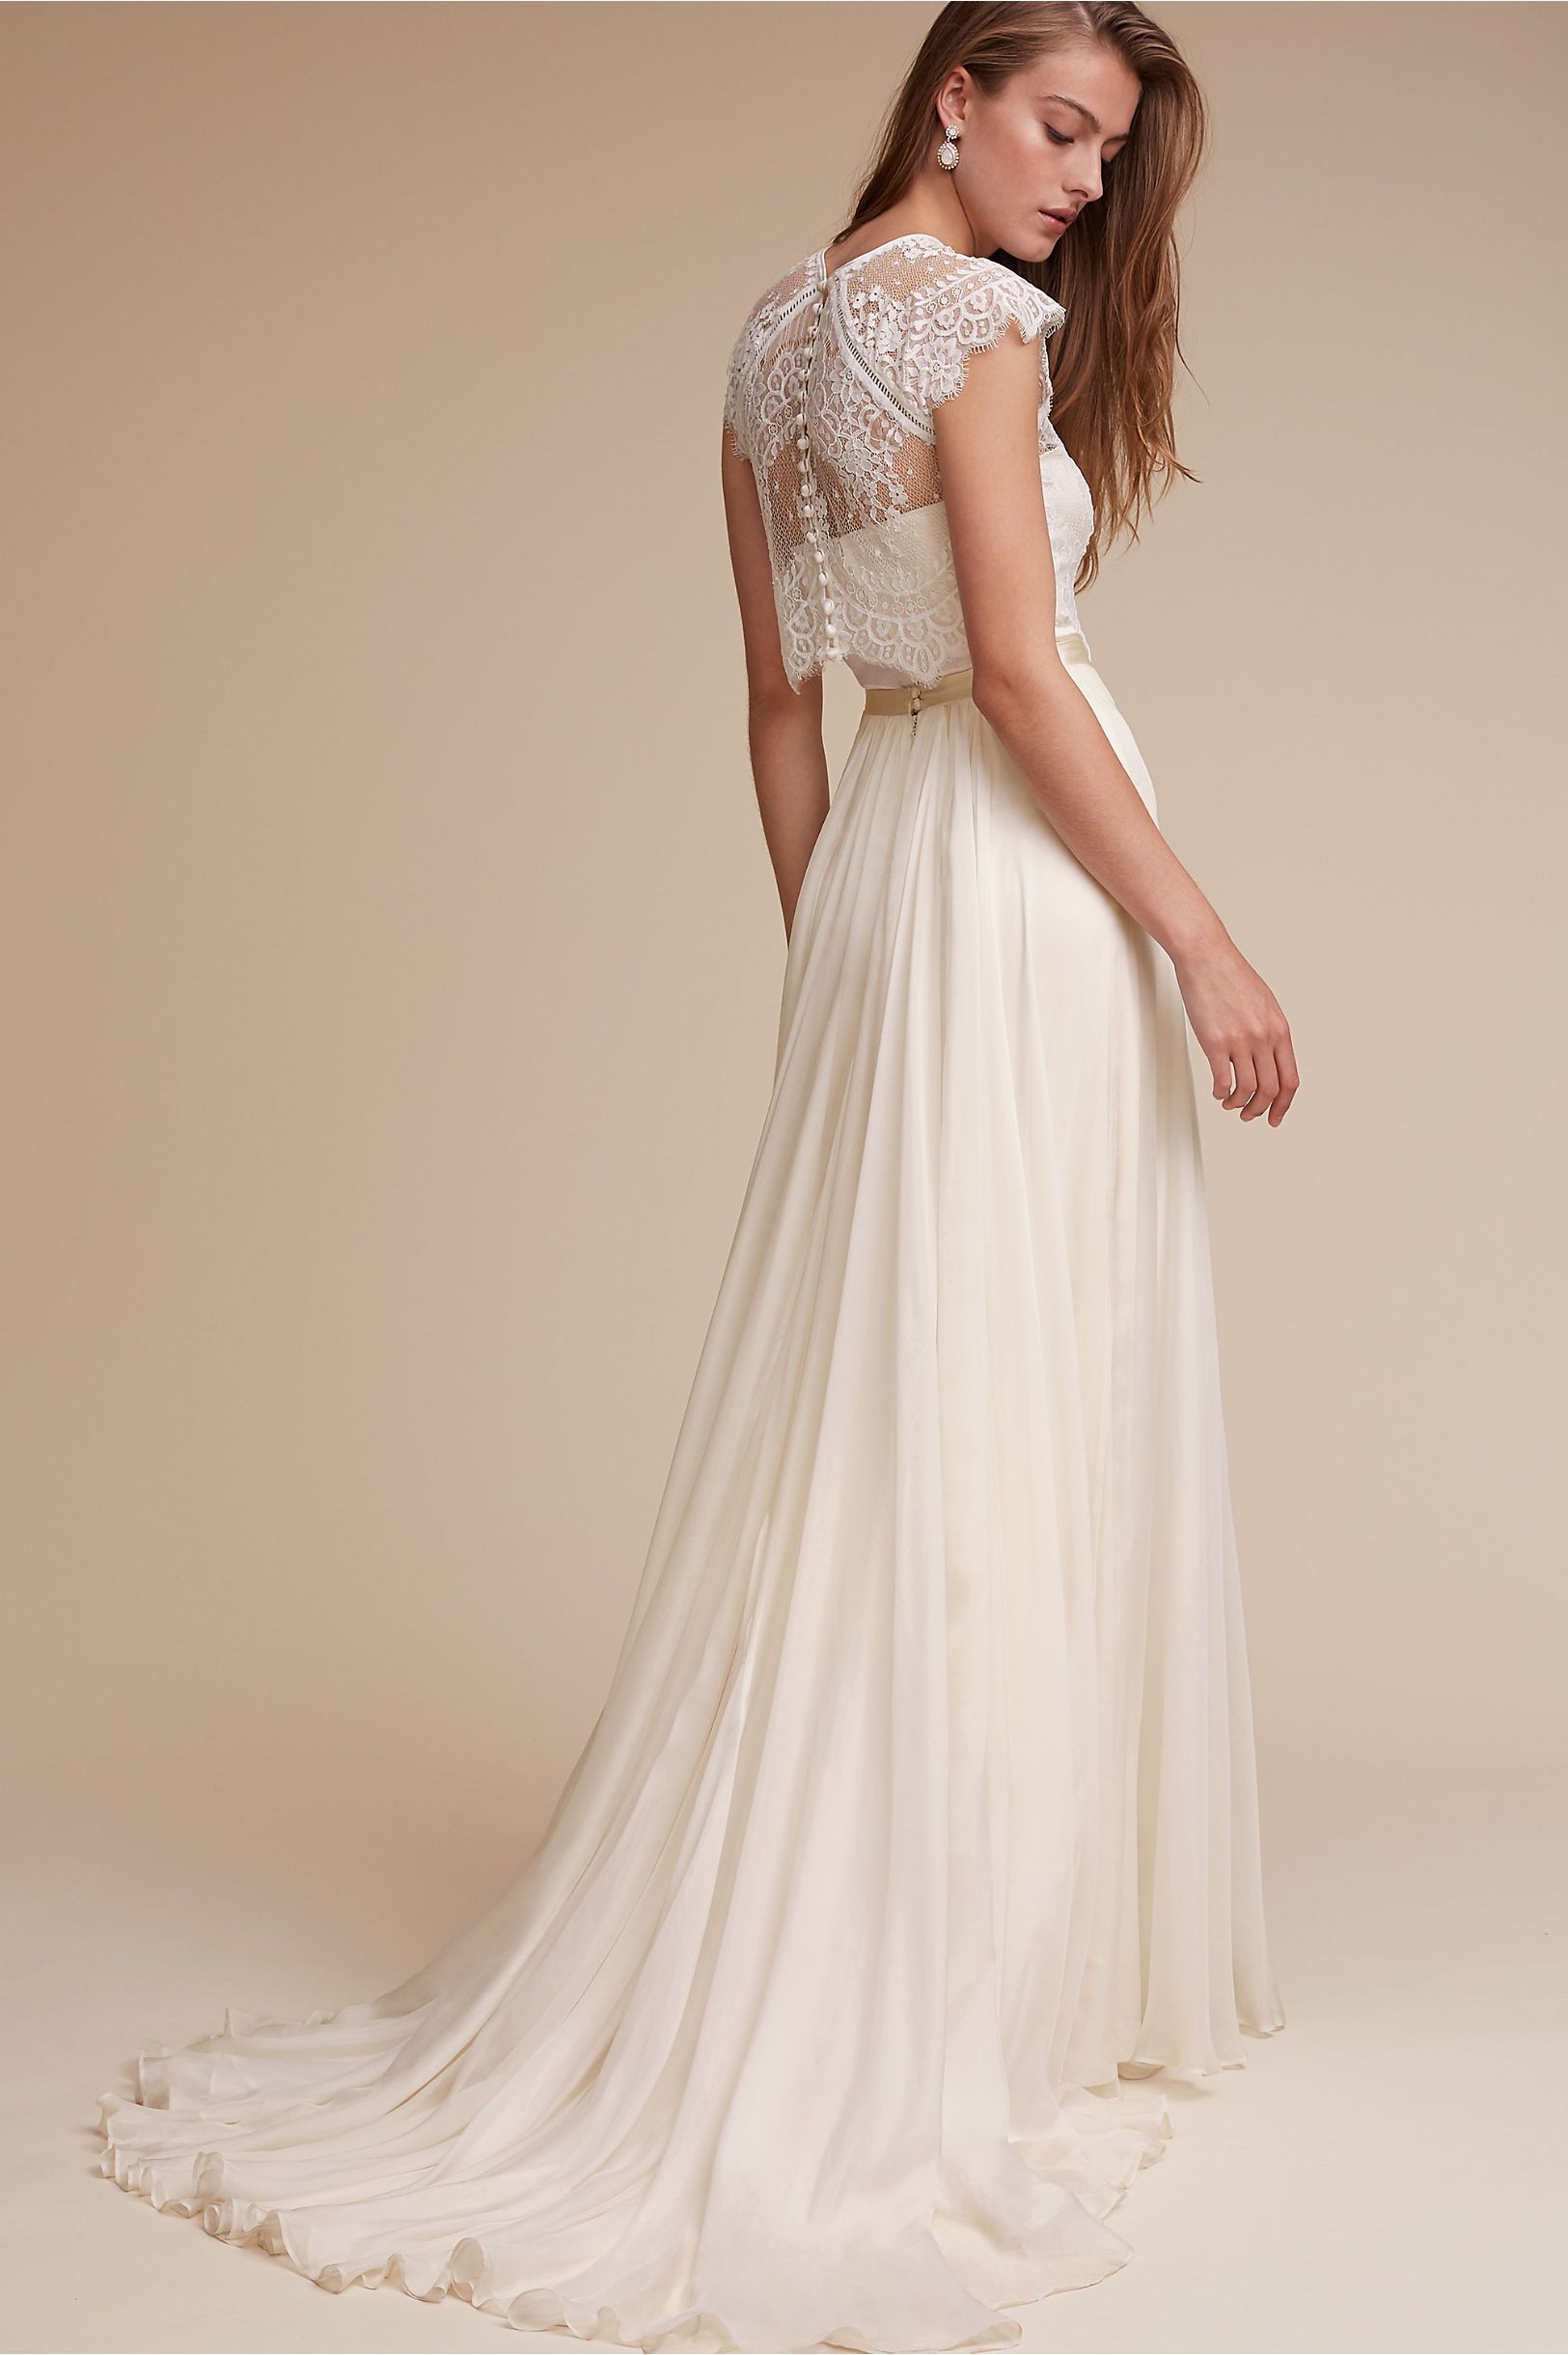 BHLDN Itala Top   Delia Maxi Skirt in Bride Wedding Dresses   BHLDN ... 6c17bbb8993